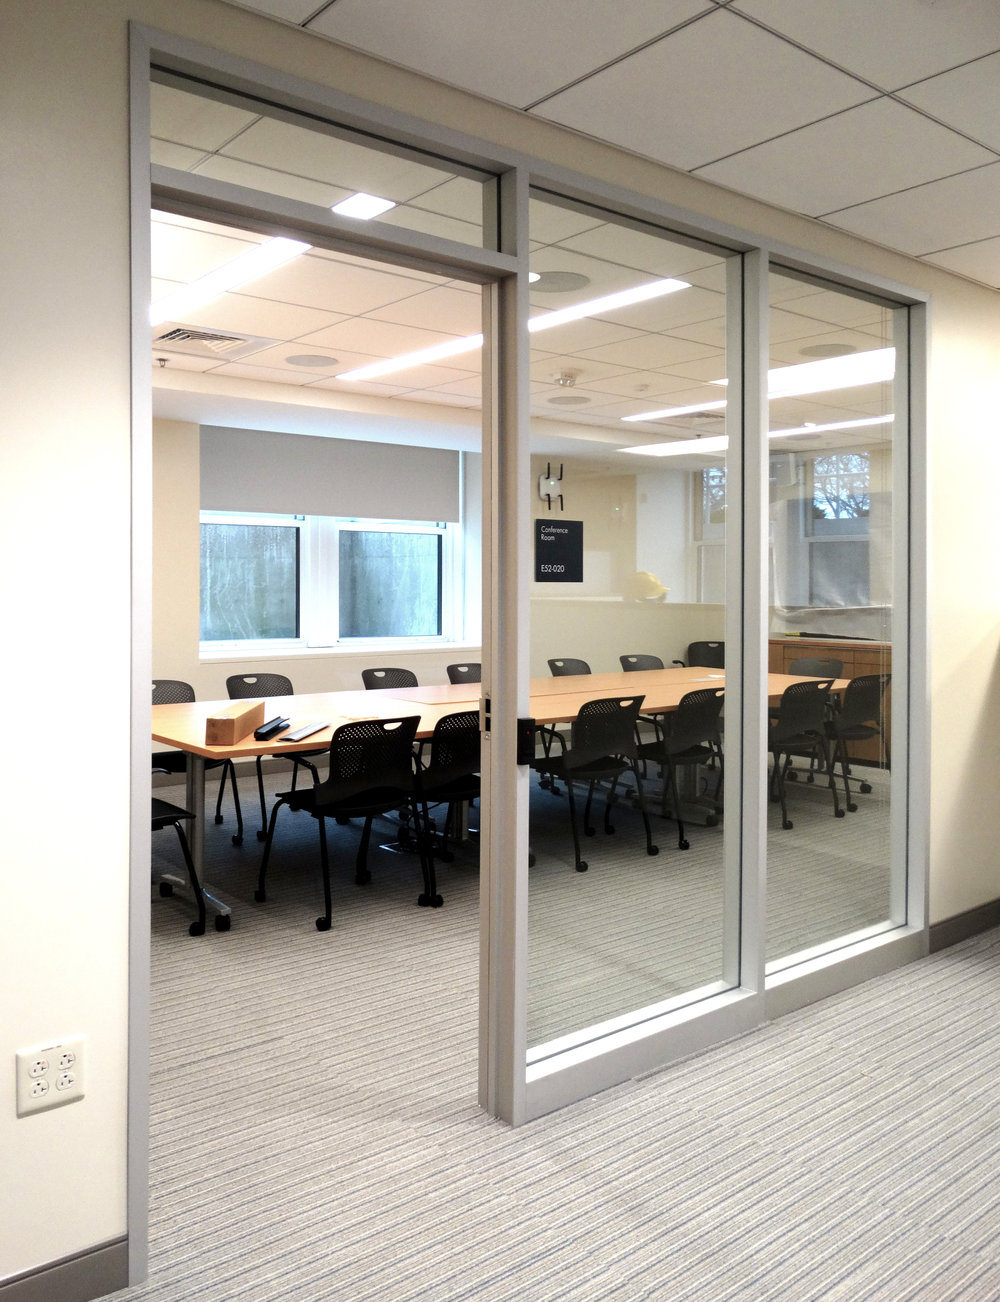 Encase Aluminum Framed Transom Glass Wall - Spaceworks AI.jpg